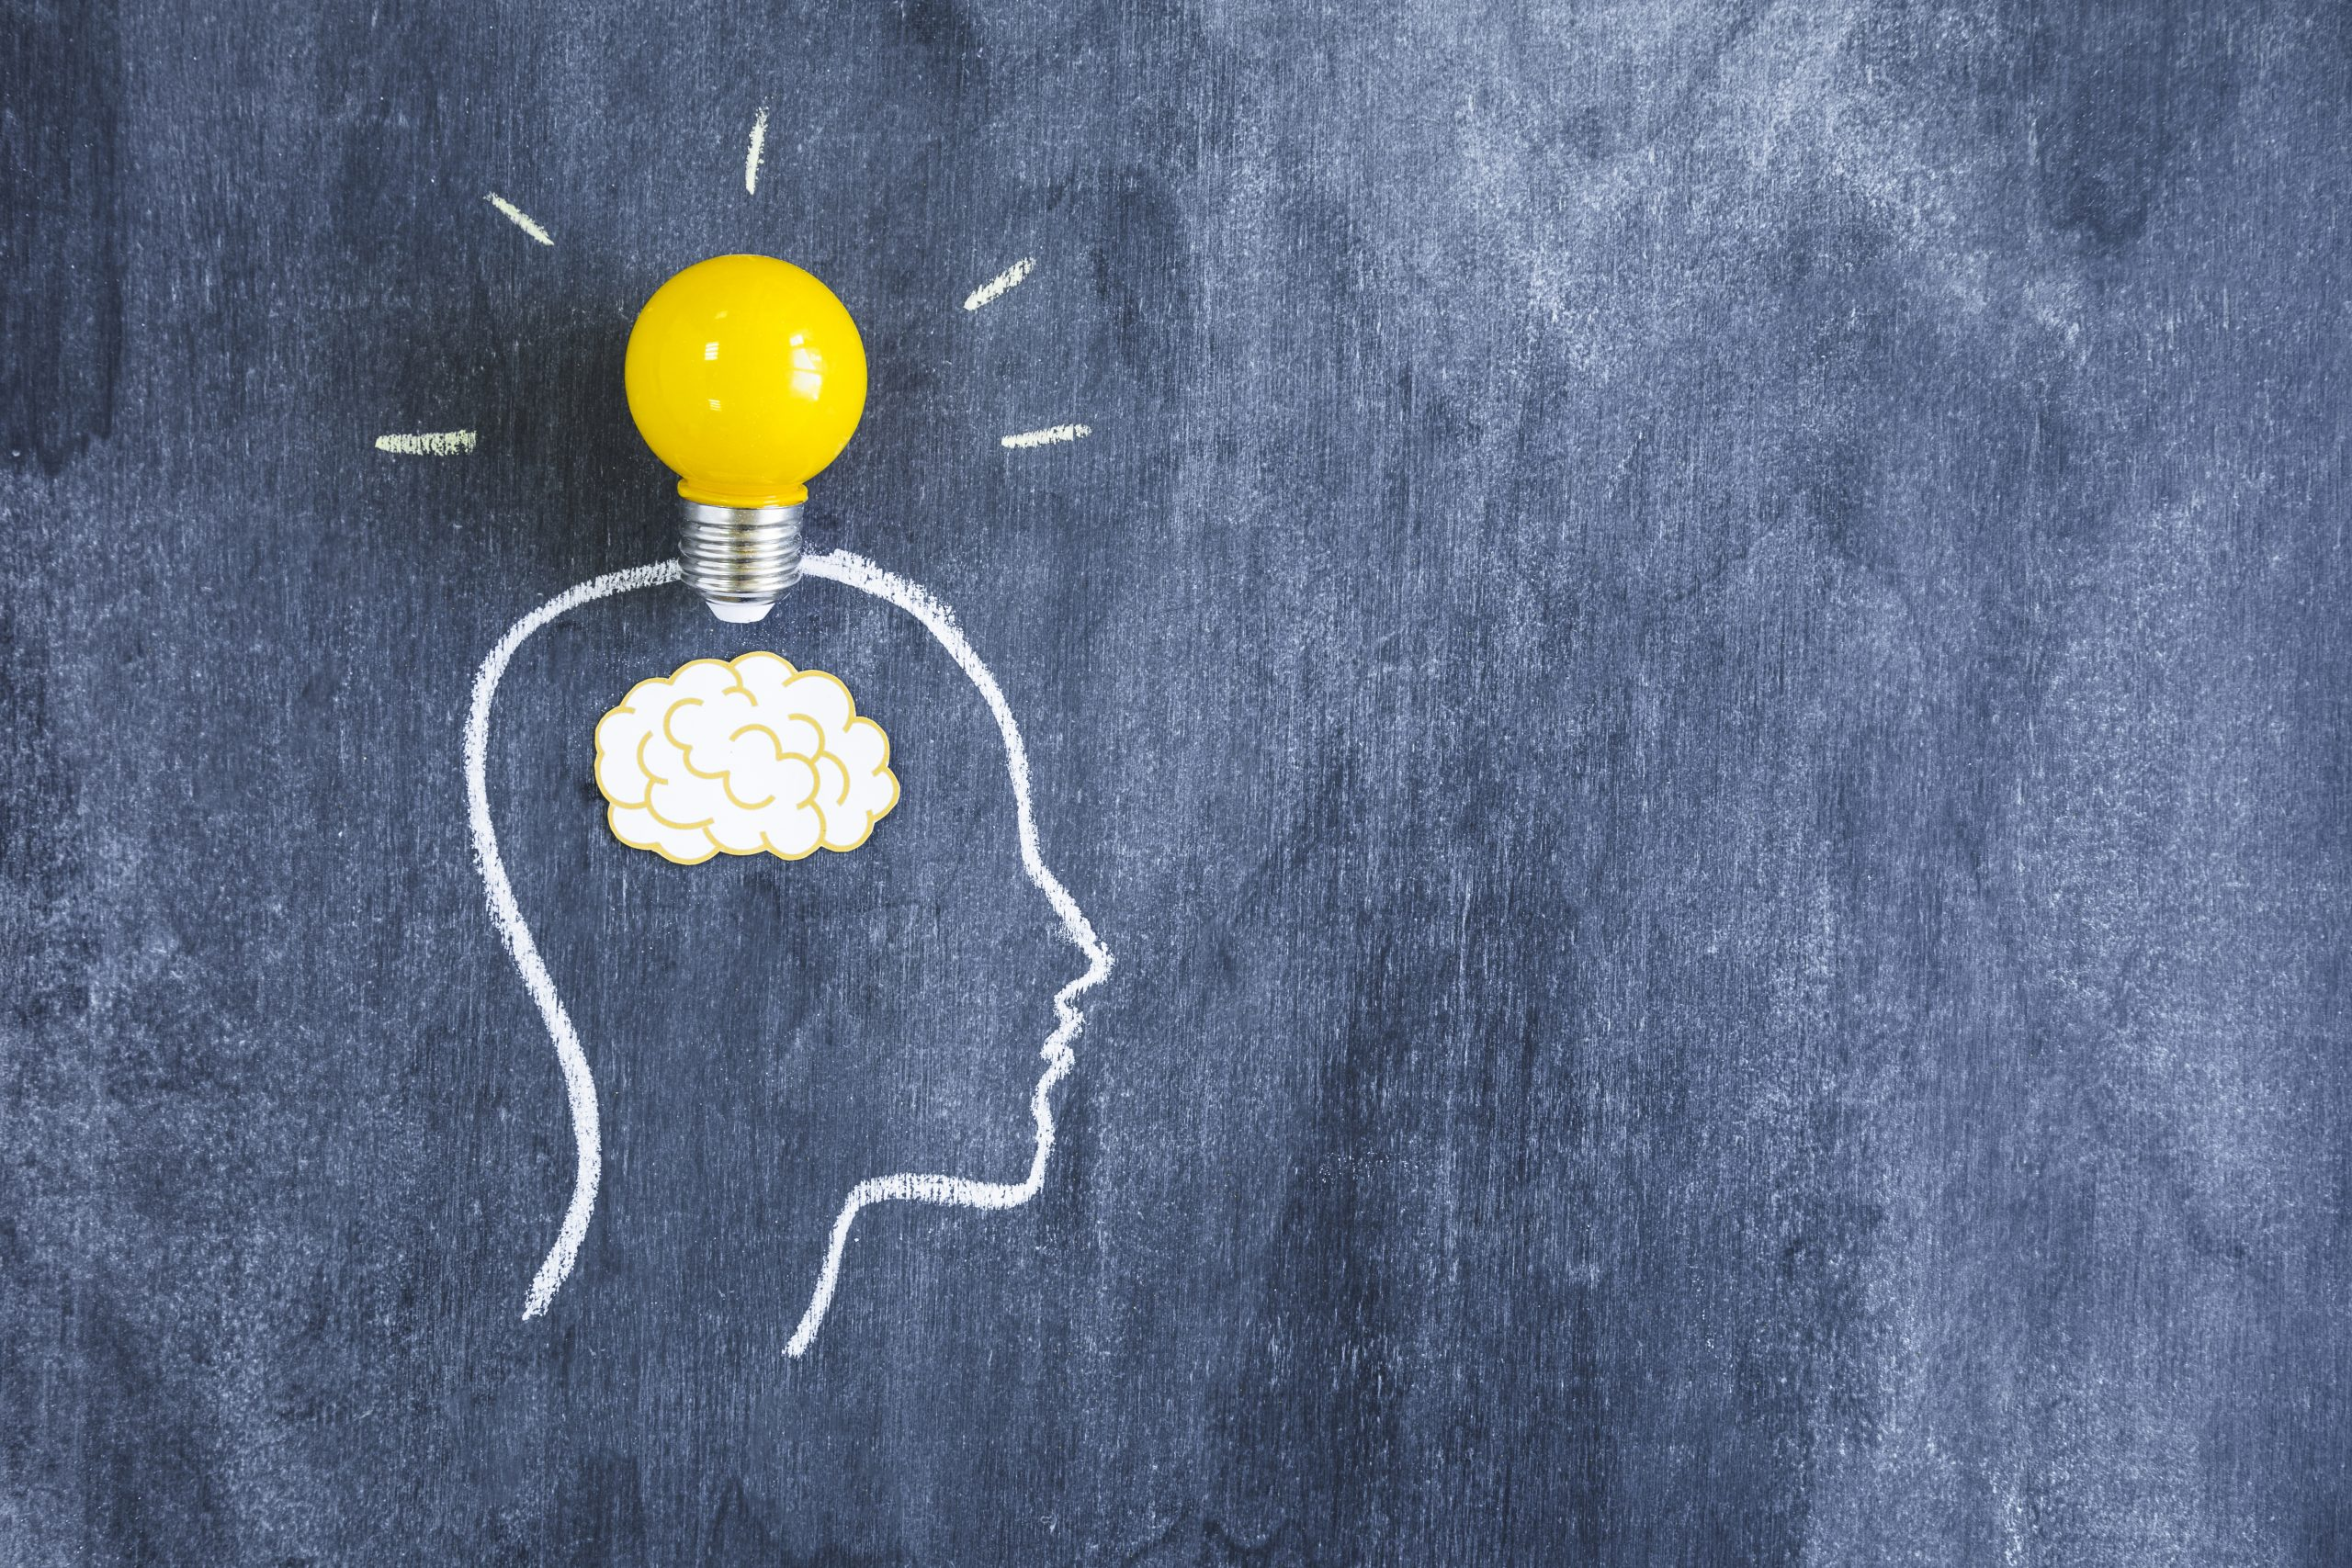 yellow-light-bulb-over-the-paper-cutout-brain-on-the-outline-face-made-with-chalk-over-the-blackboard